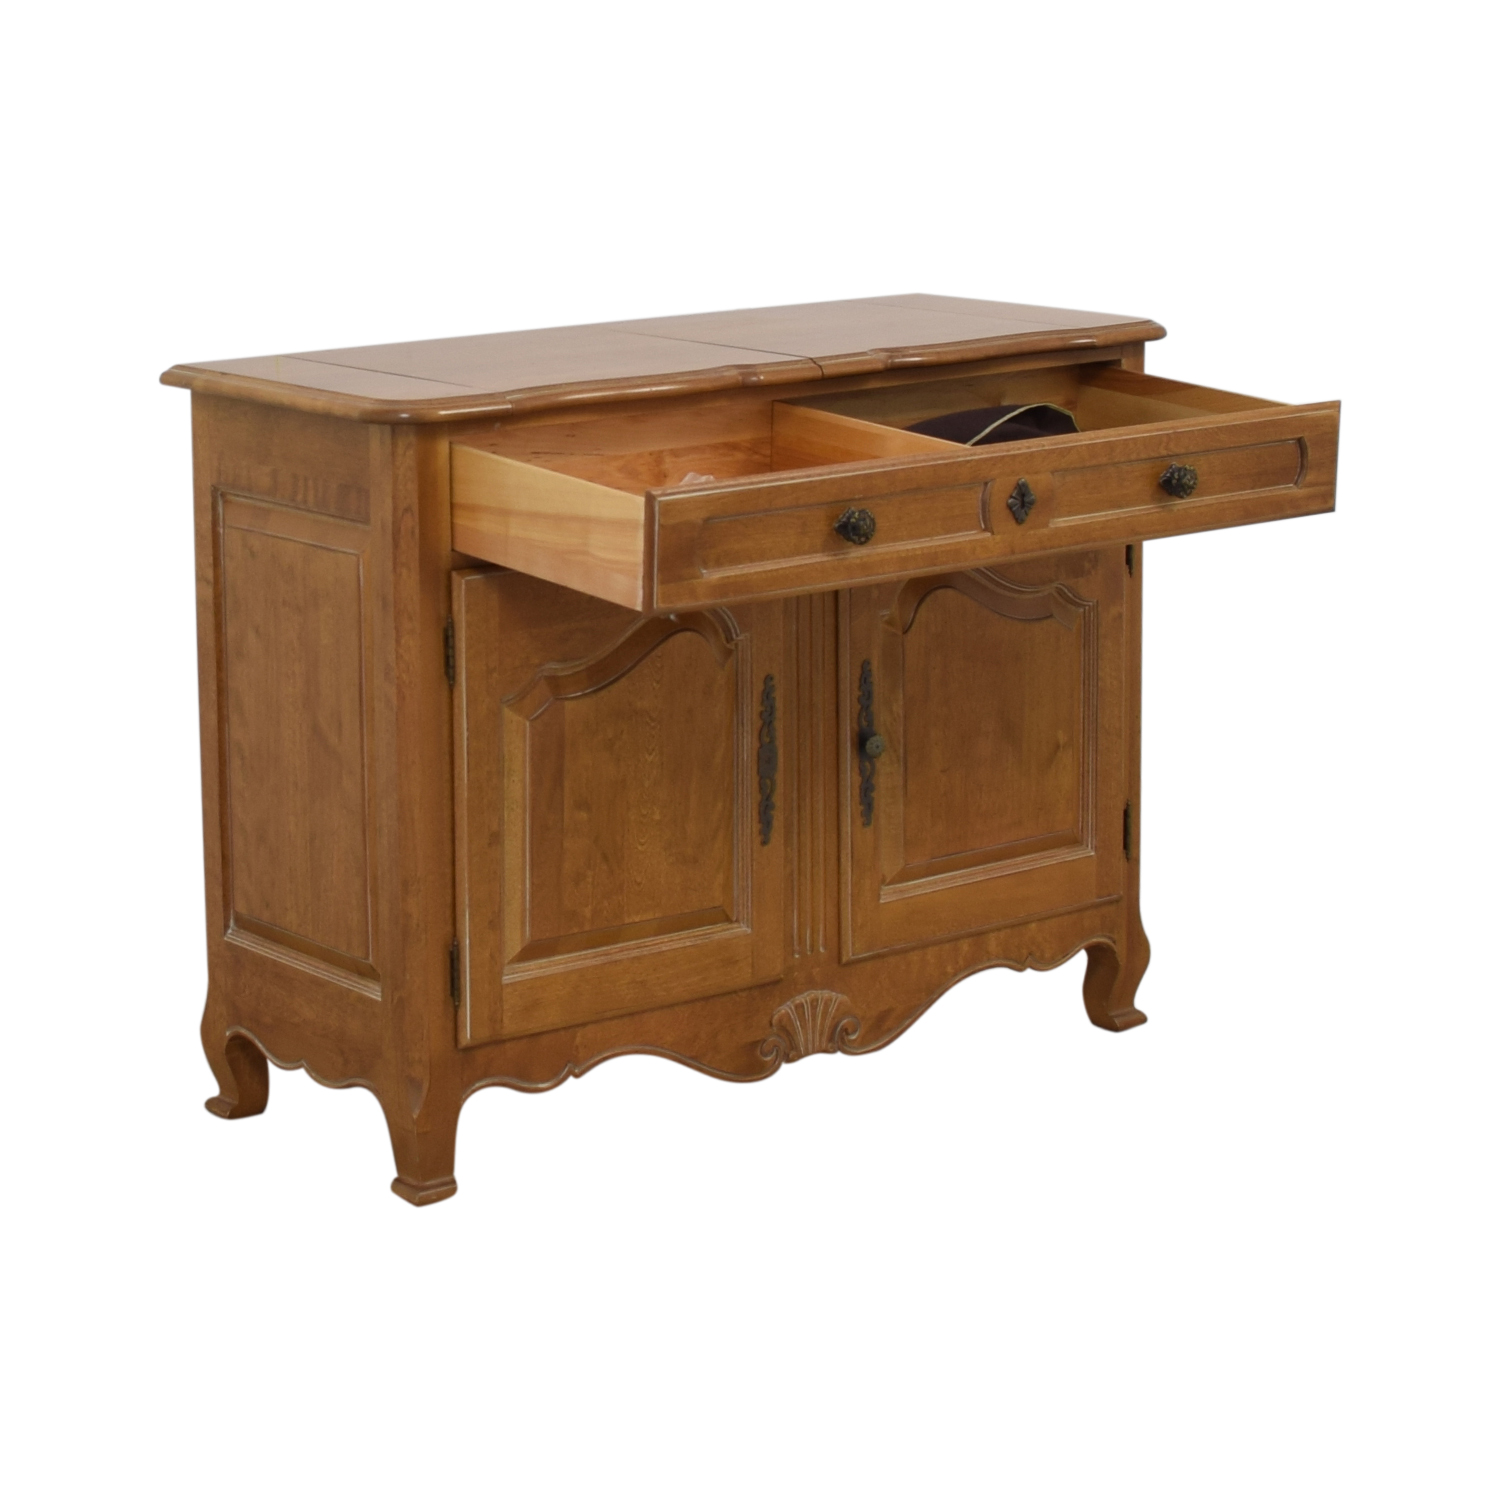 Ethan Allen Country French Server / Cabinets & Sideboards